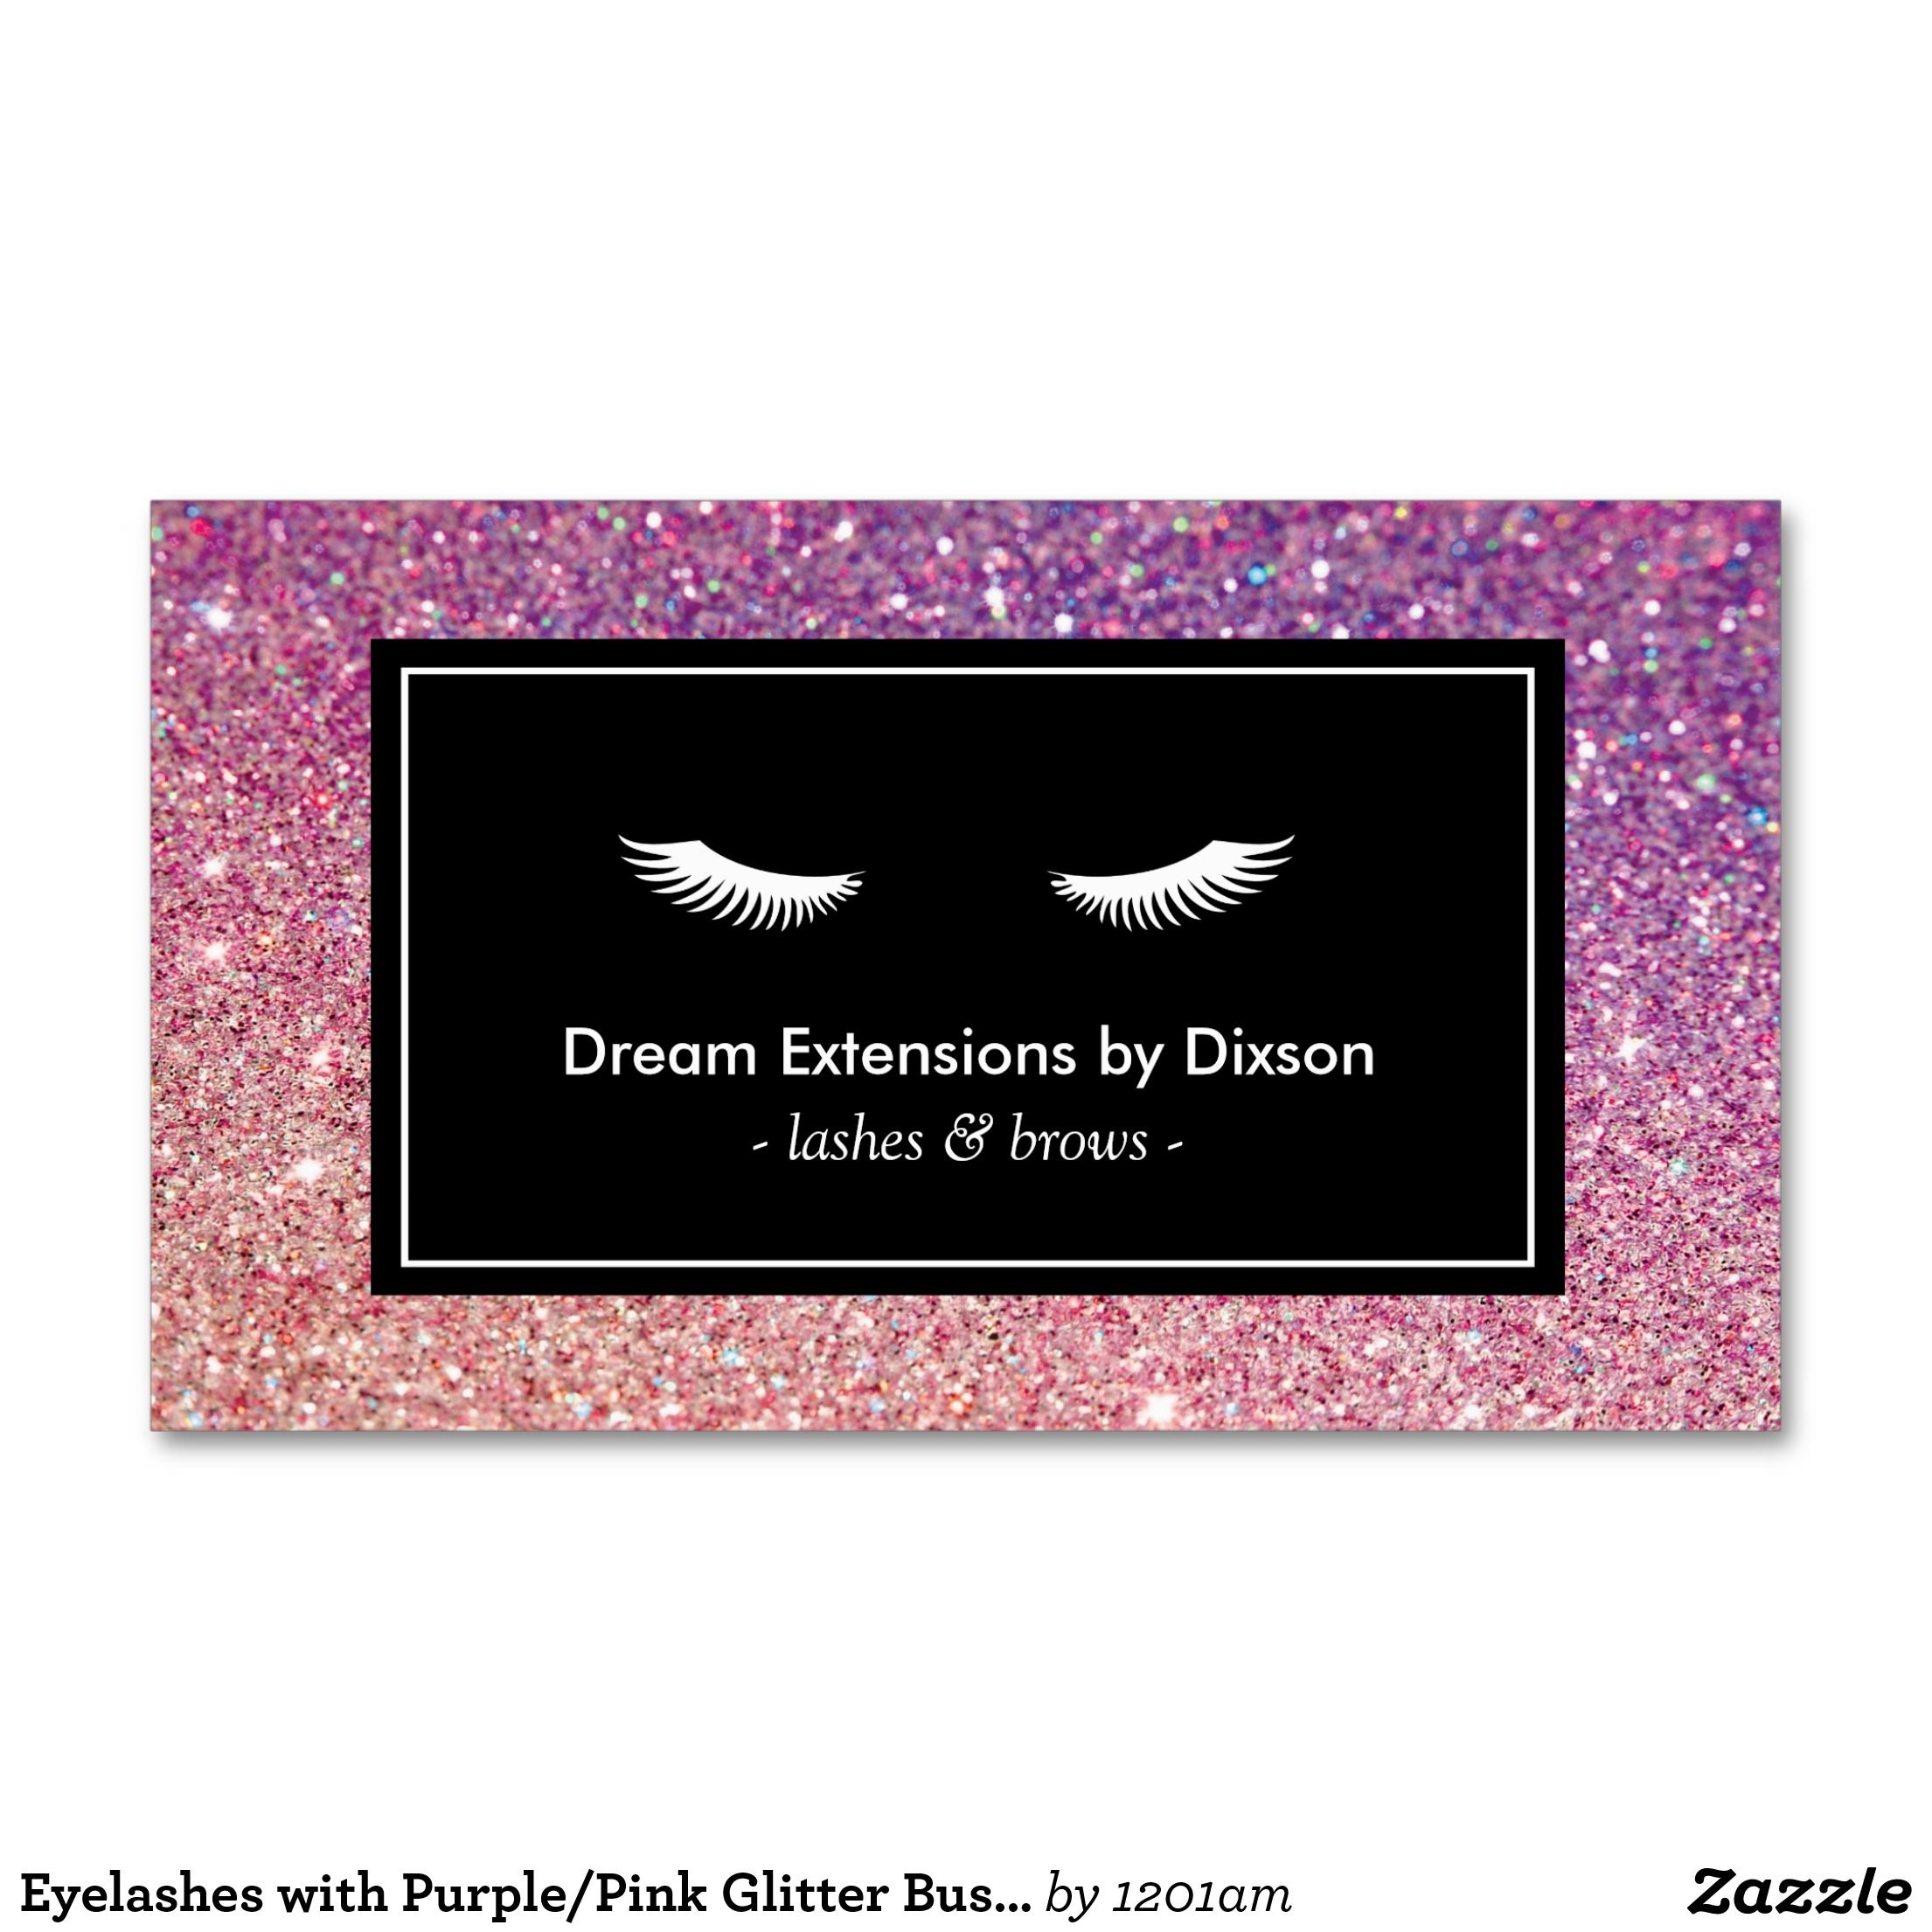 Eyelashes with purplepink glitter business card pink glitter eyelashes with purplepink glitter business card magicingreecefo Image collections